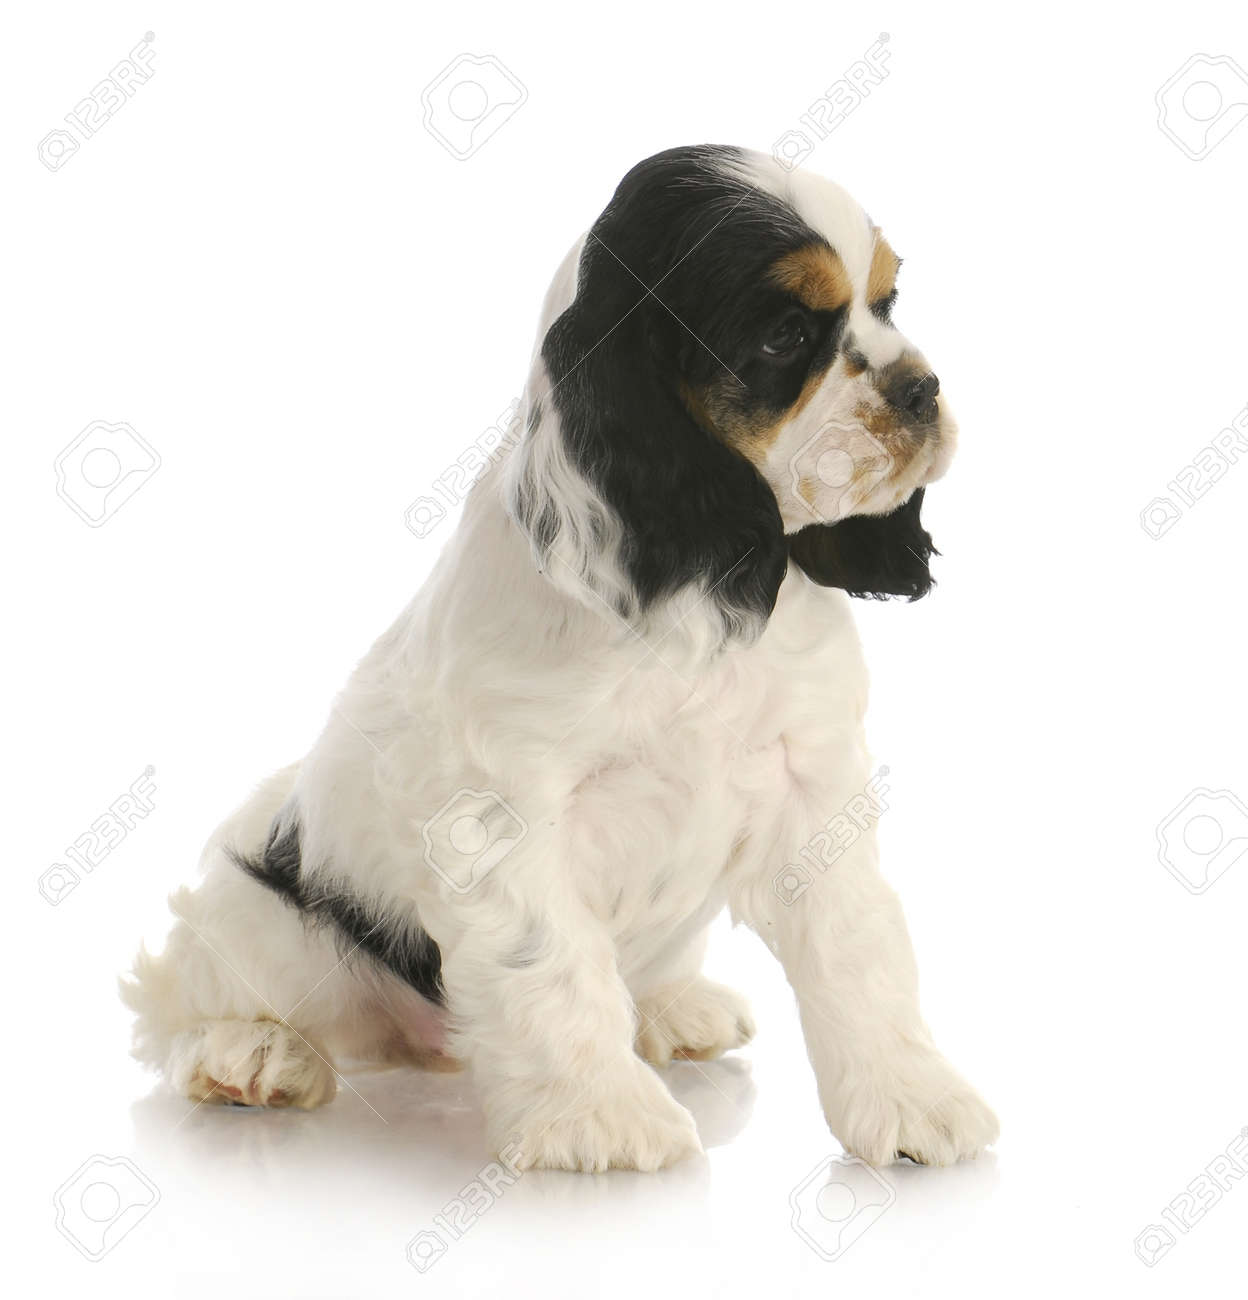 Cute Puppy Tri Color American Cocker Spaniel Puppy Sitting Stock Photo Picture And Royalty Free Image Image 12911289